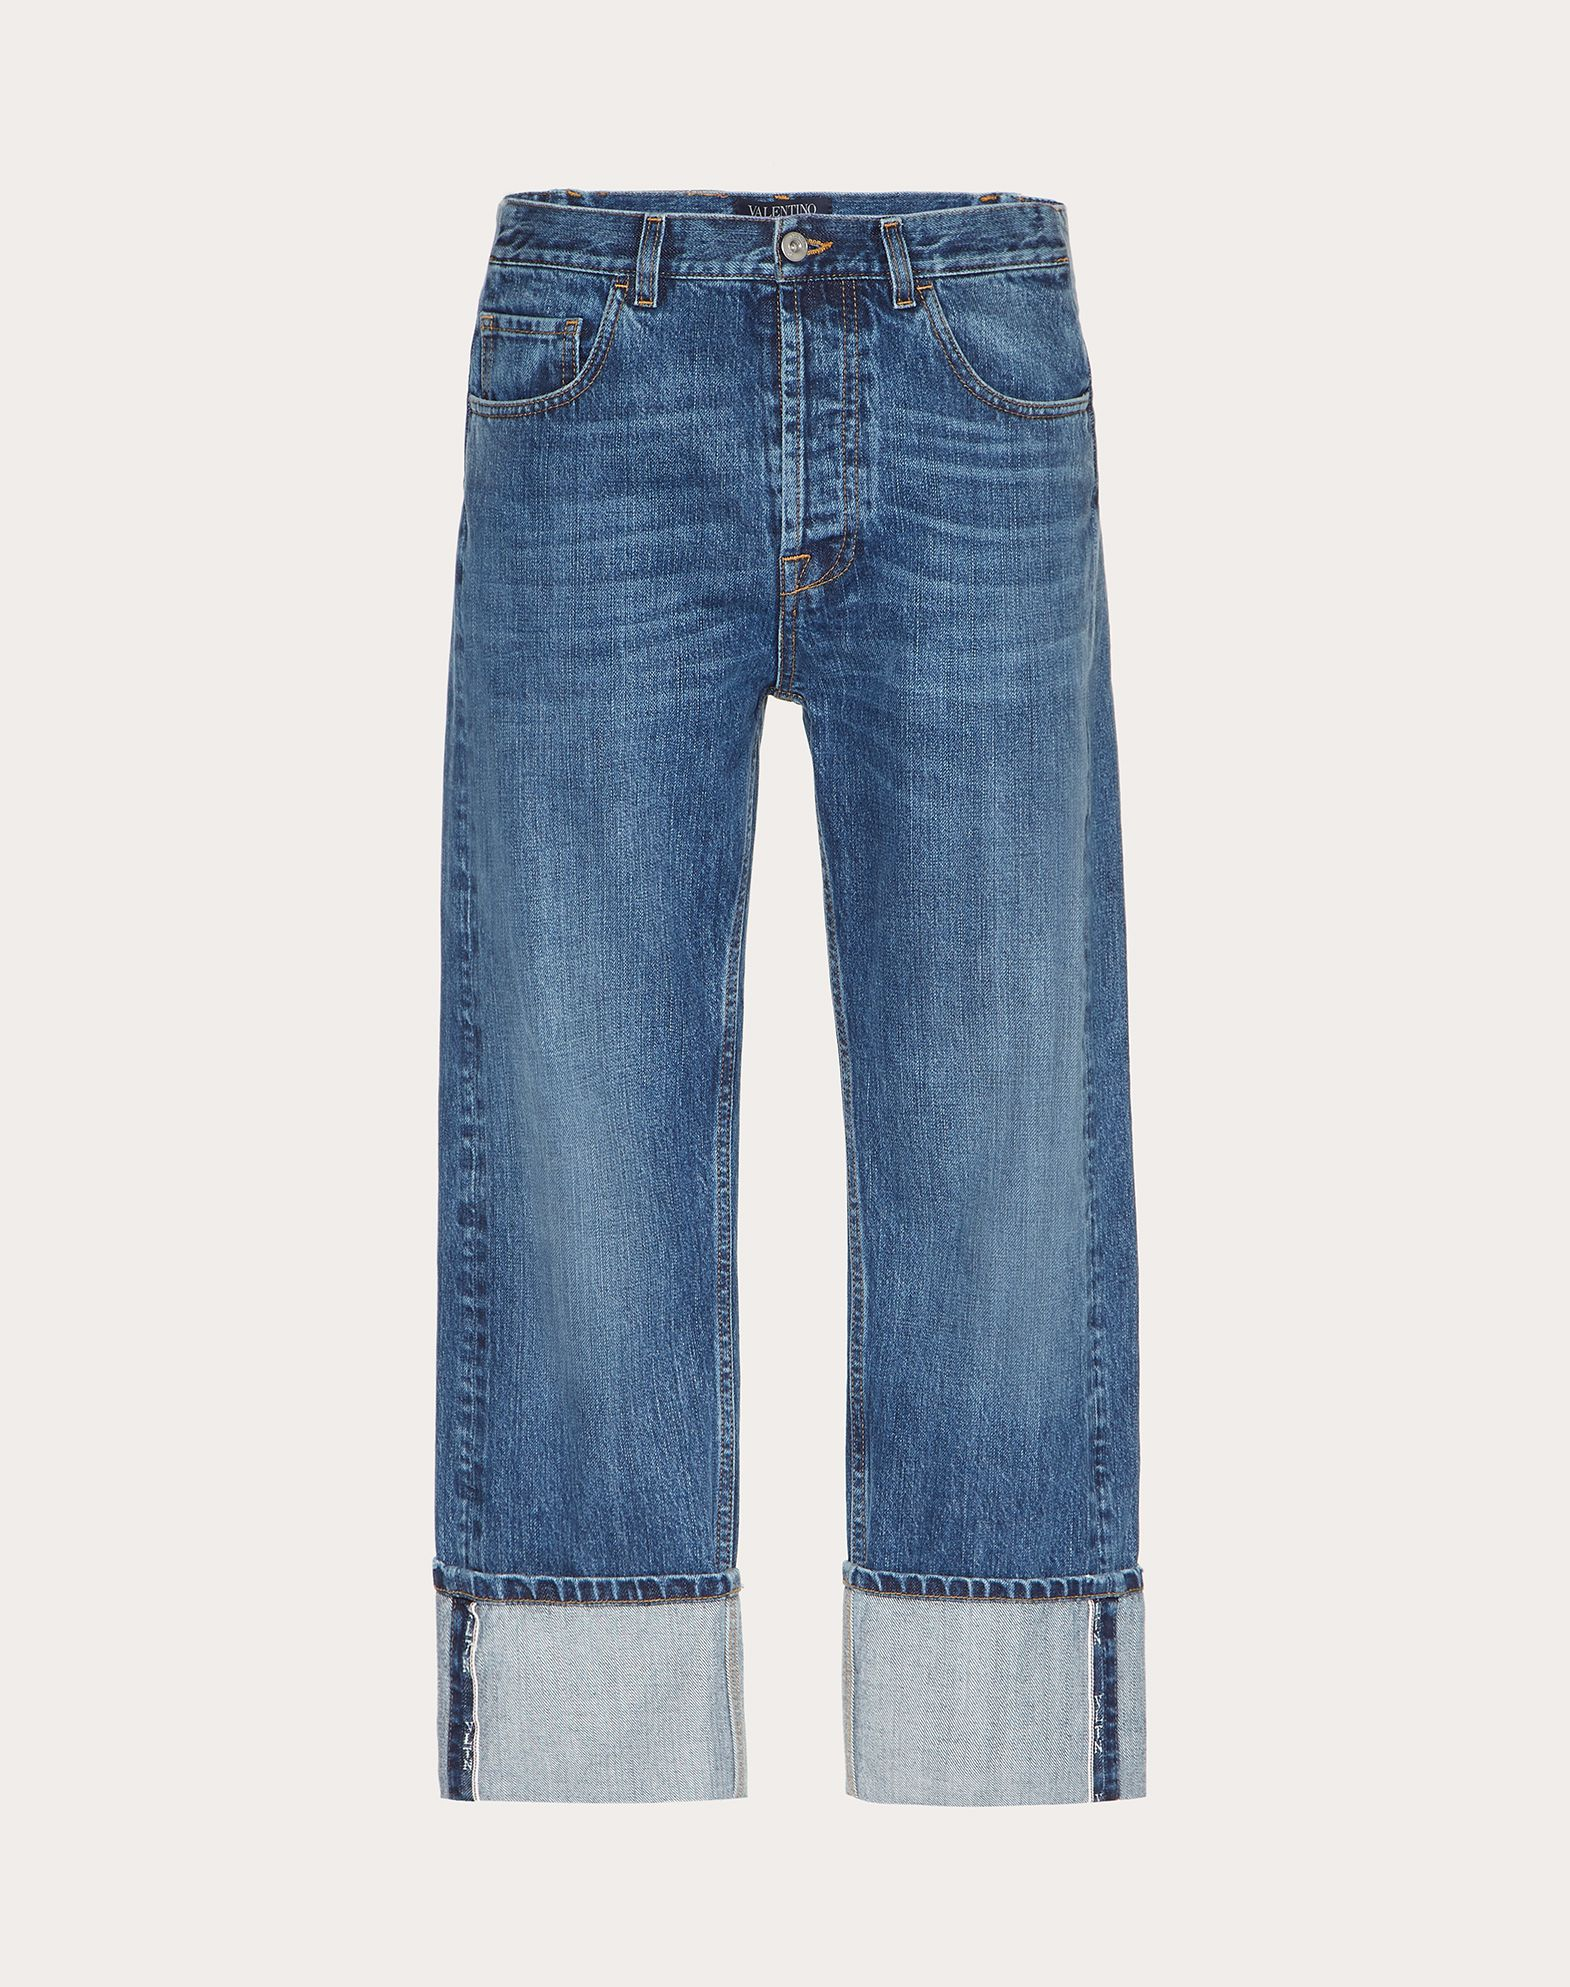 VLTN BAGGY JEANS WITH SELVAGE